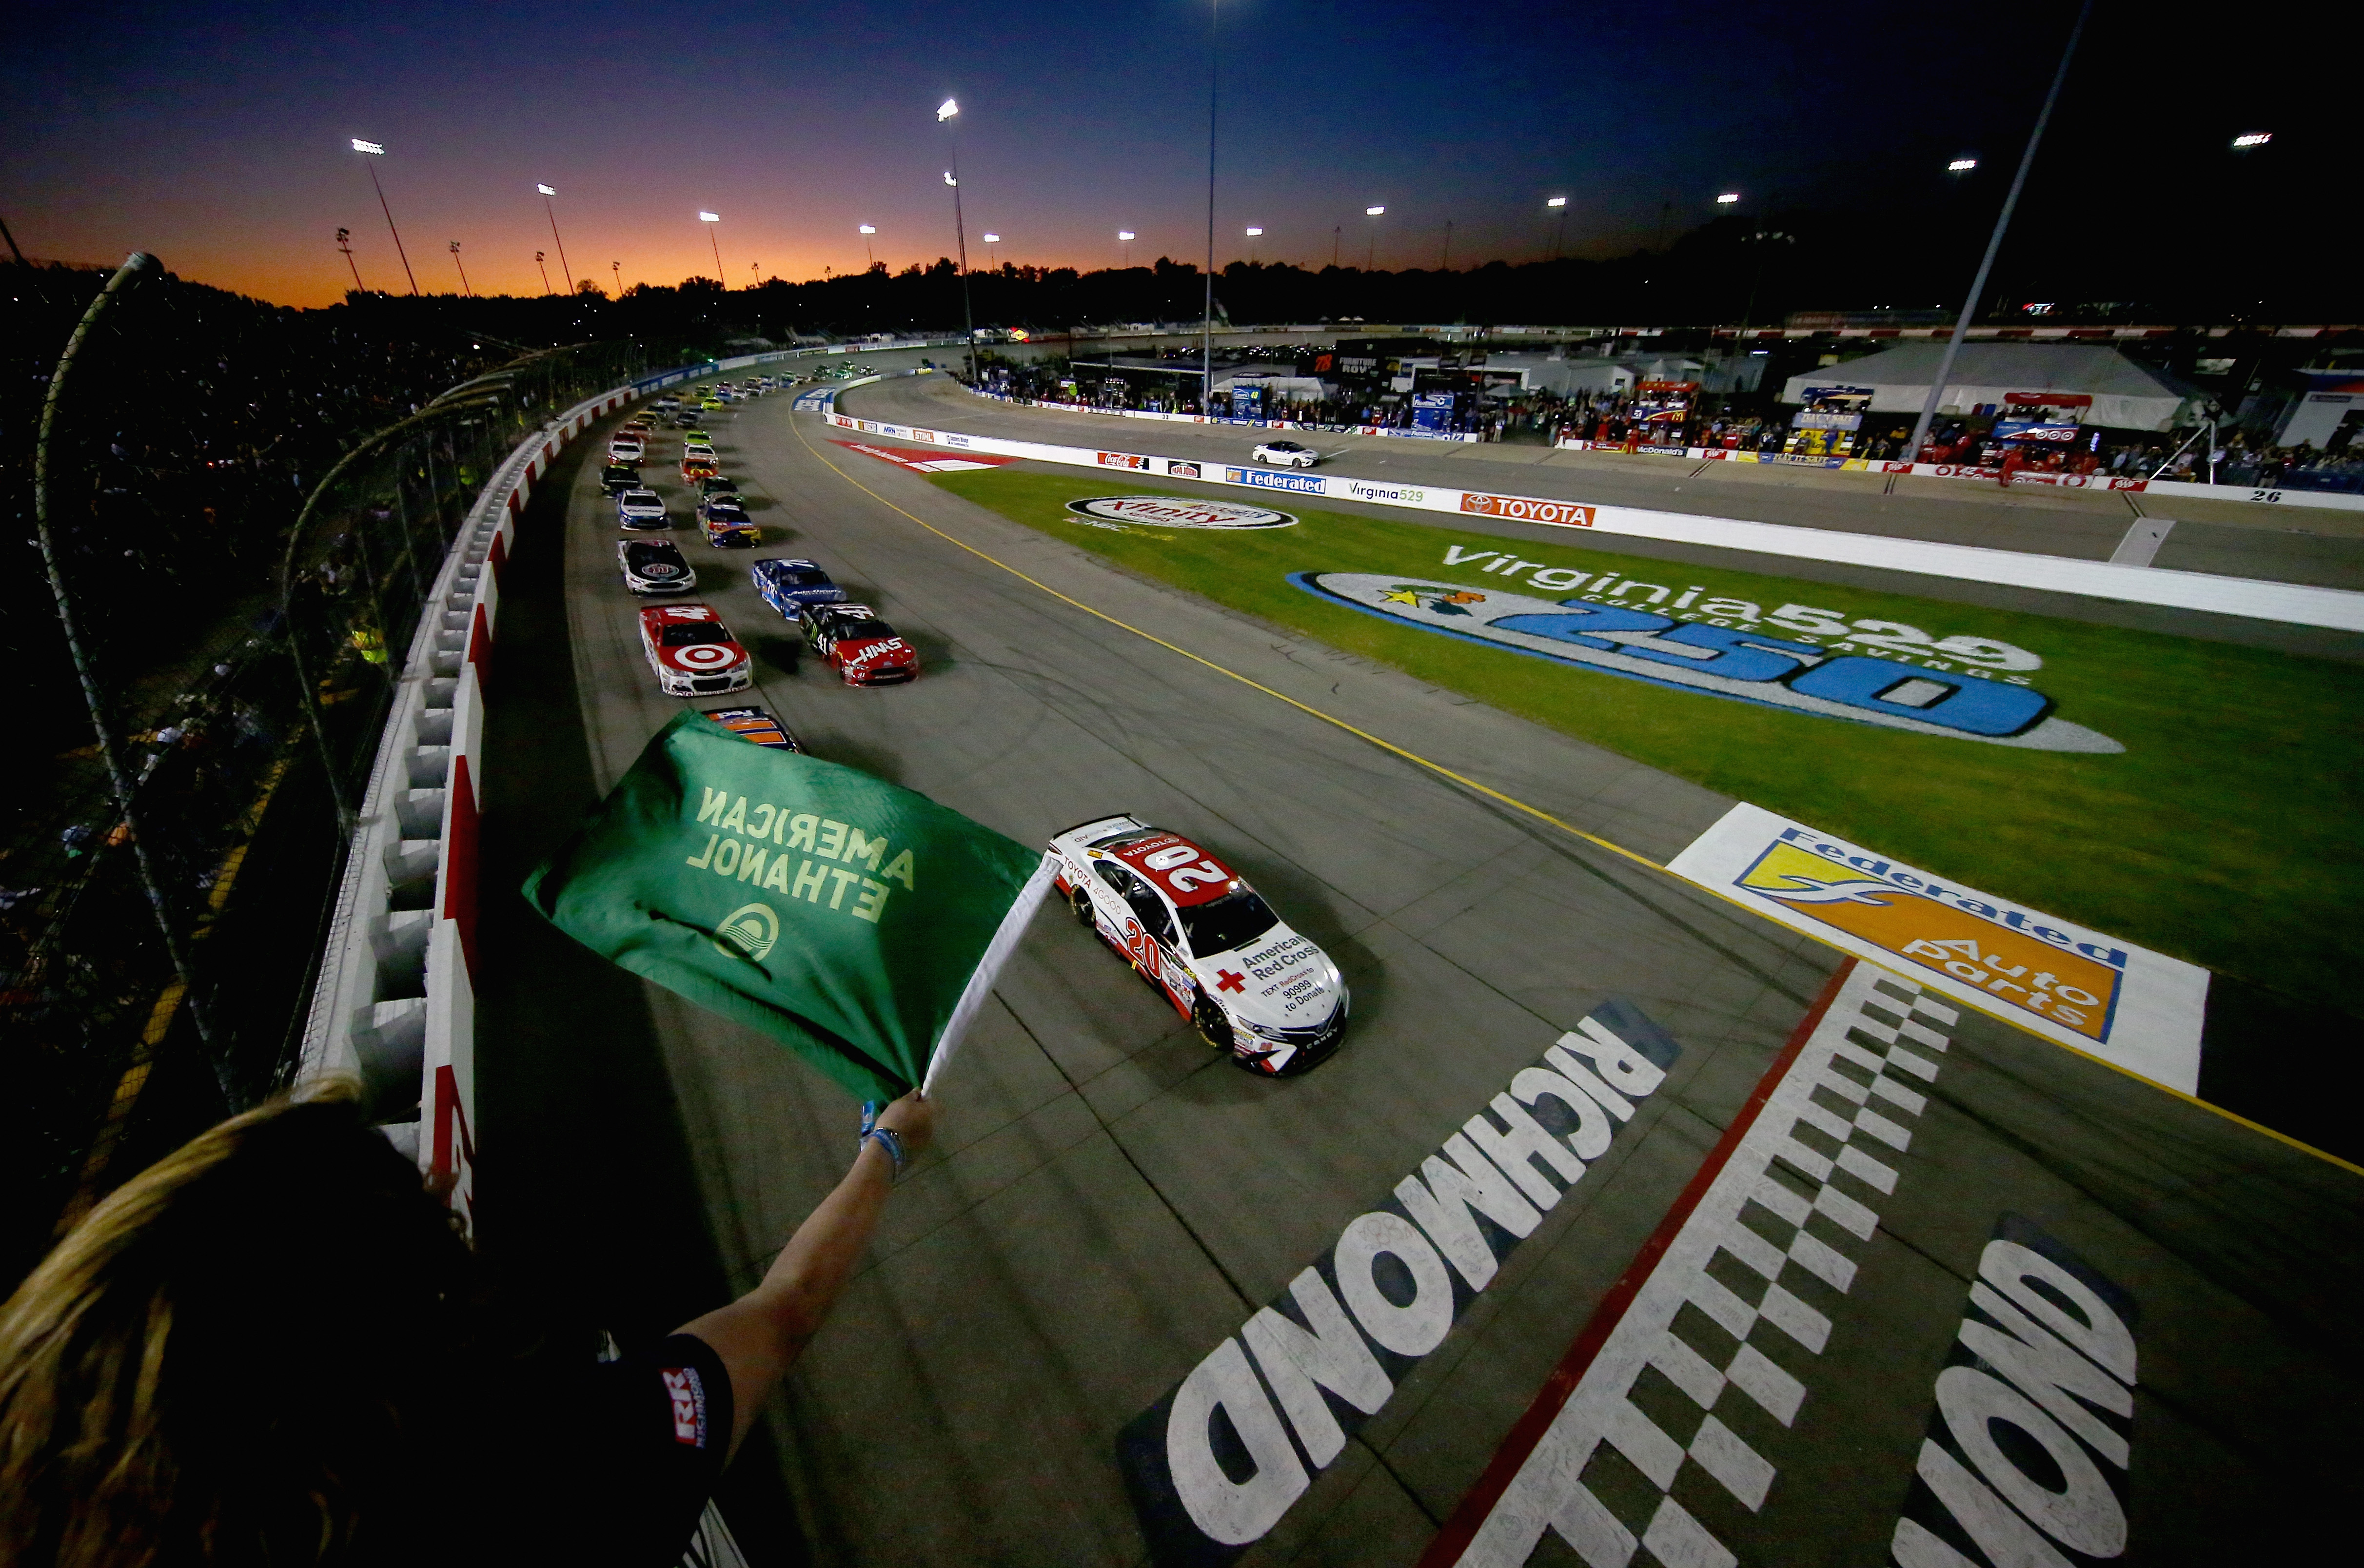 2017 Richmond Race Results - September 10, 2017 - NASCAR Cup Series